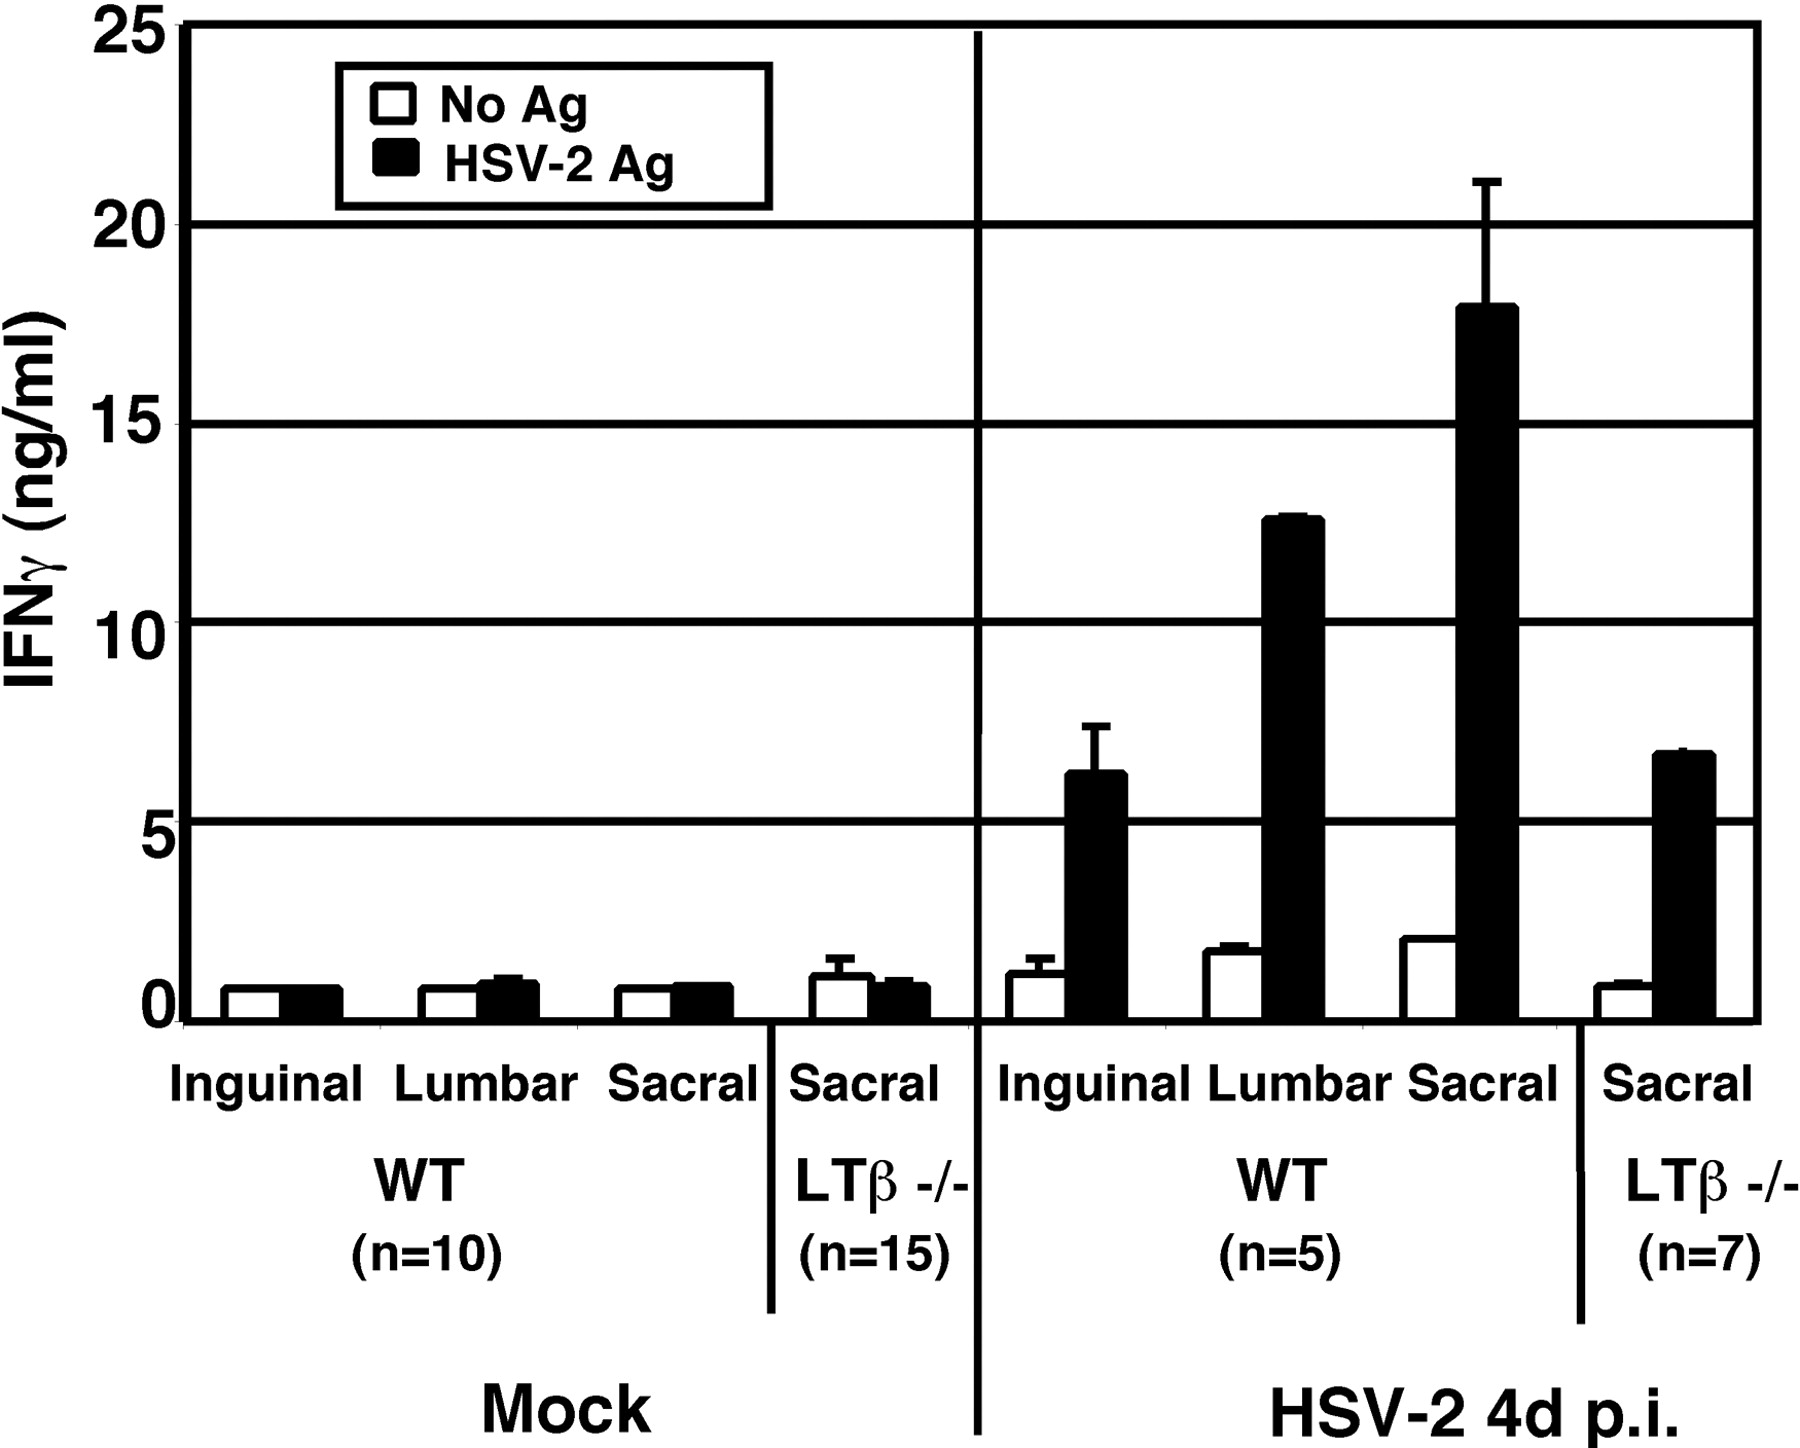 Madcam 1 Expressing Sacral Lymph Node In The Lymphotoxin Deficient